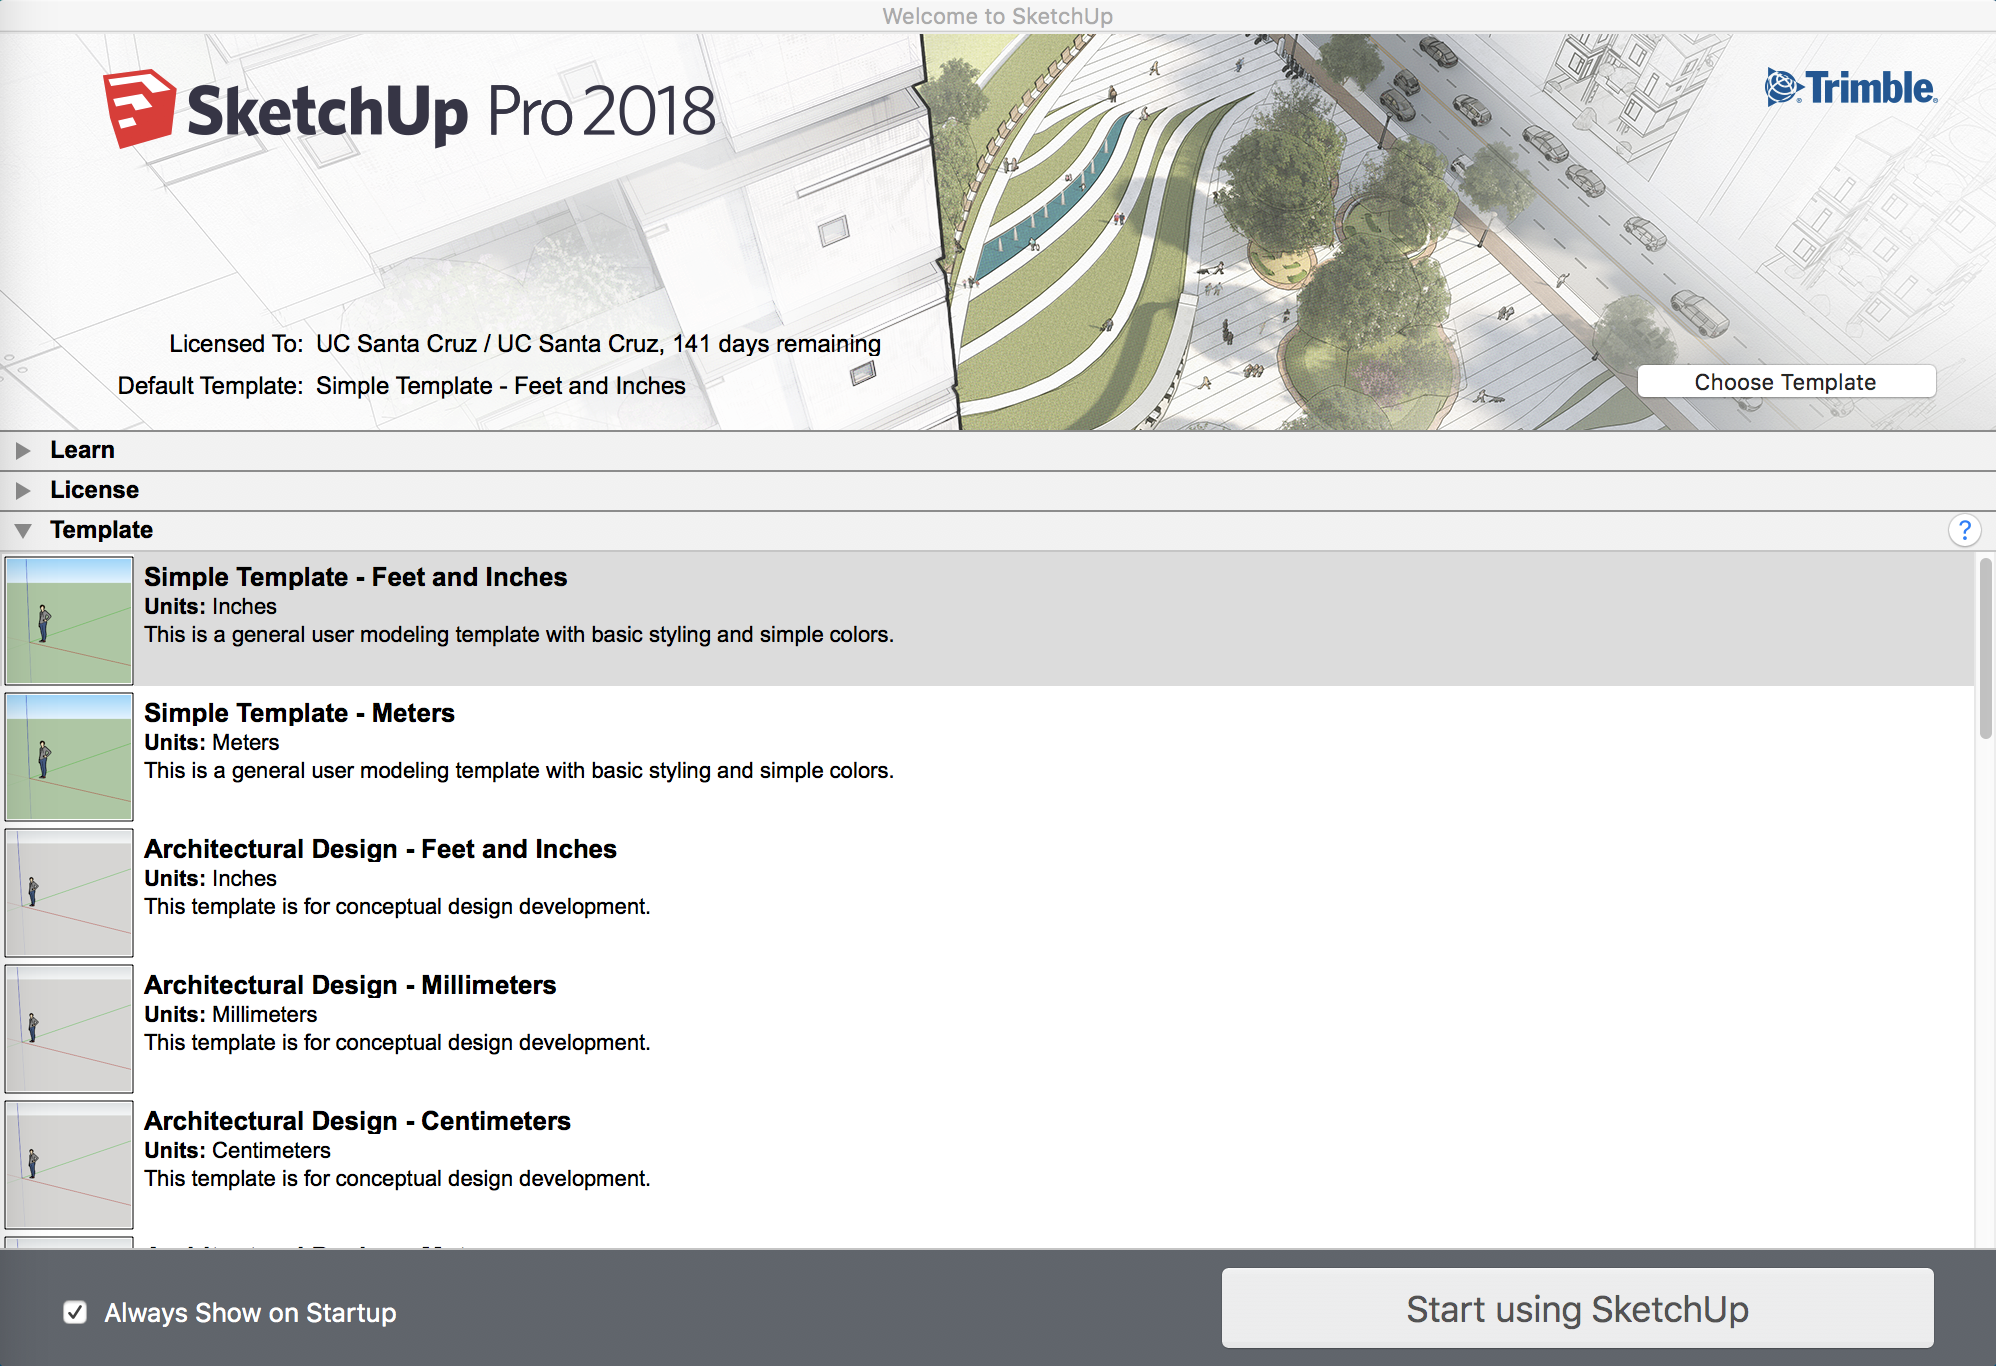 SketchUp Pro 2018 Template Selection Screen